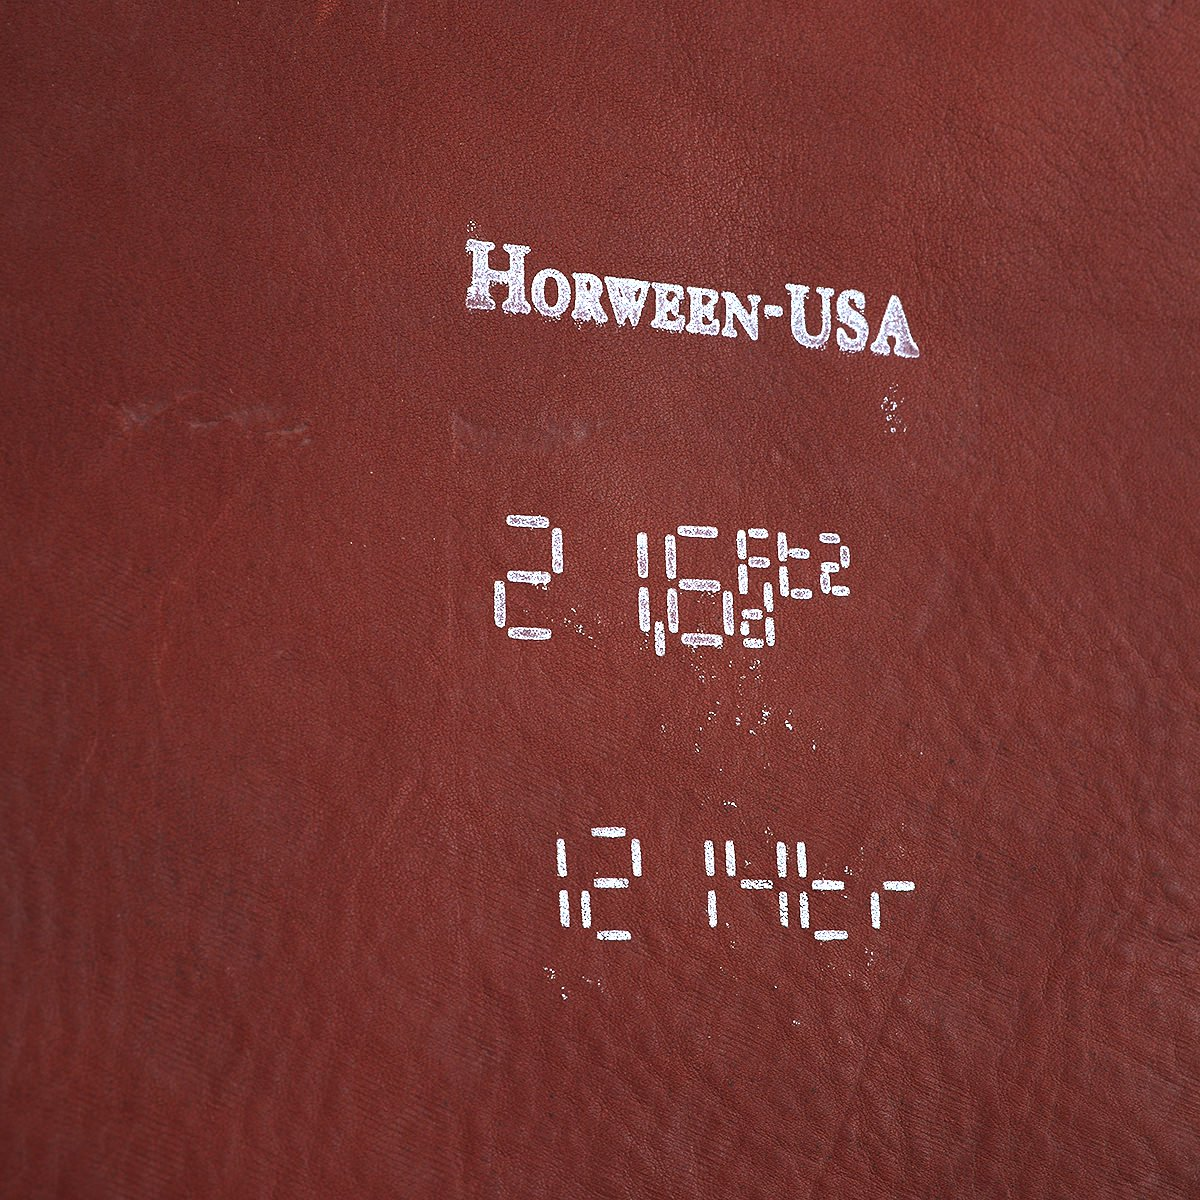 HORWEEN LEATHER COMPANY CALICO SUEDE RUST 詳細画像3